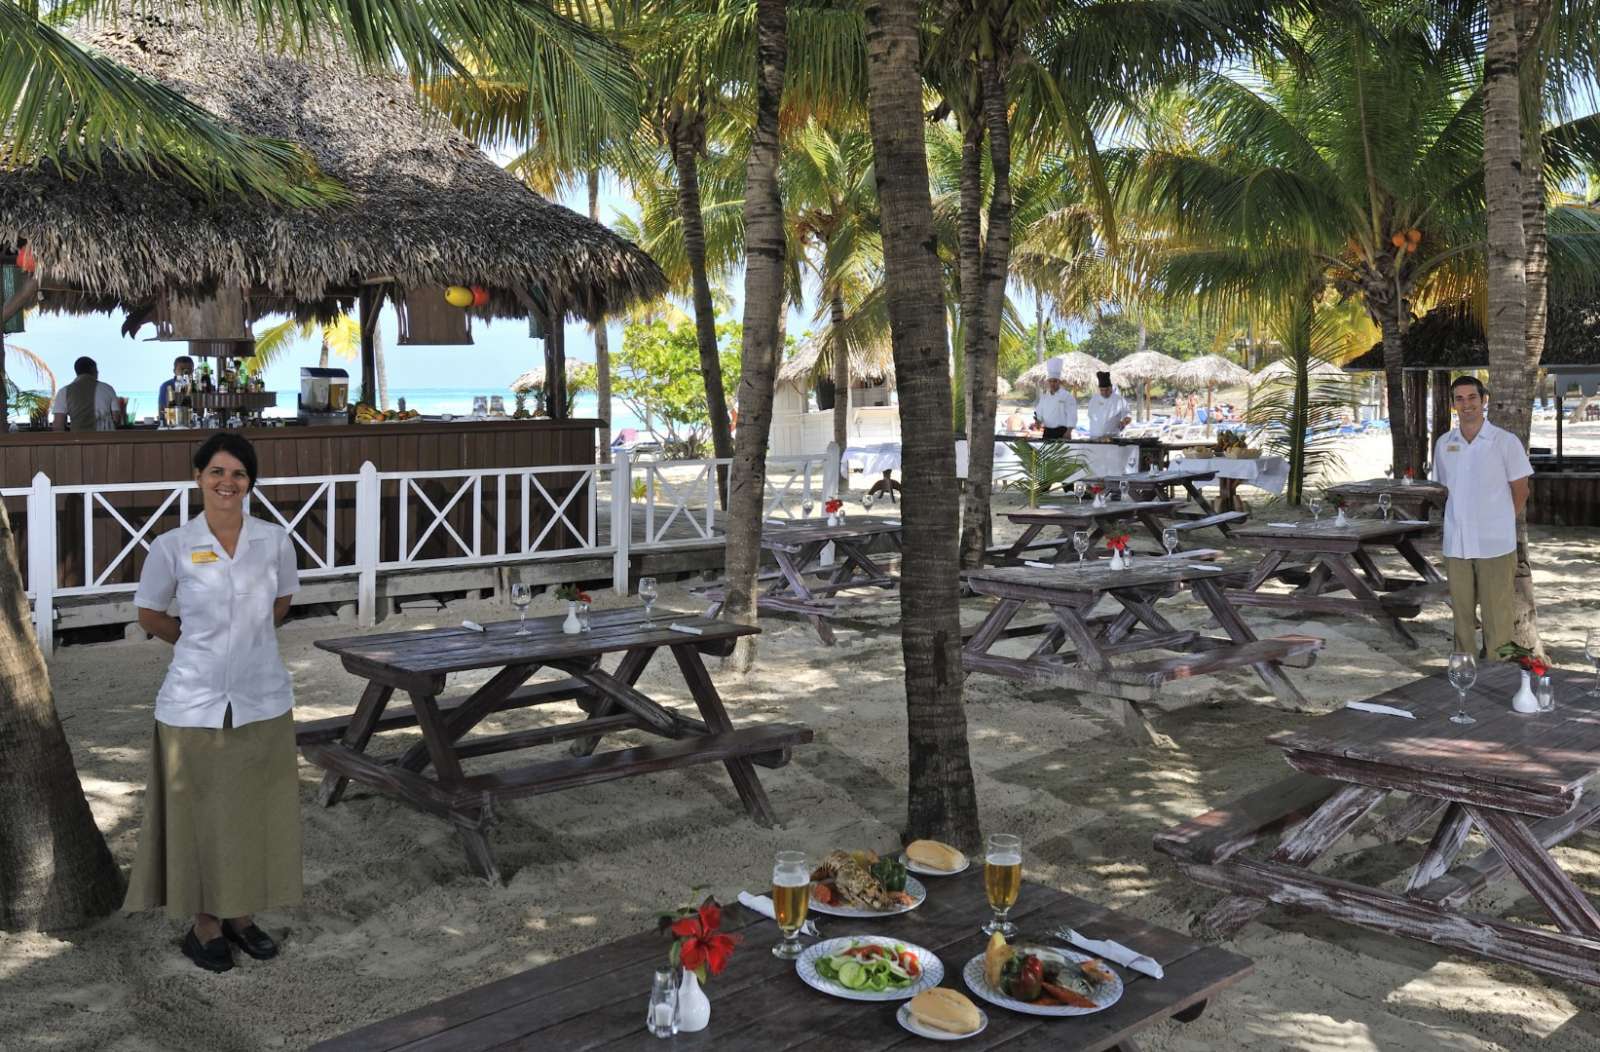 Beach restaurant at Paradisus Varadero